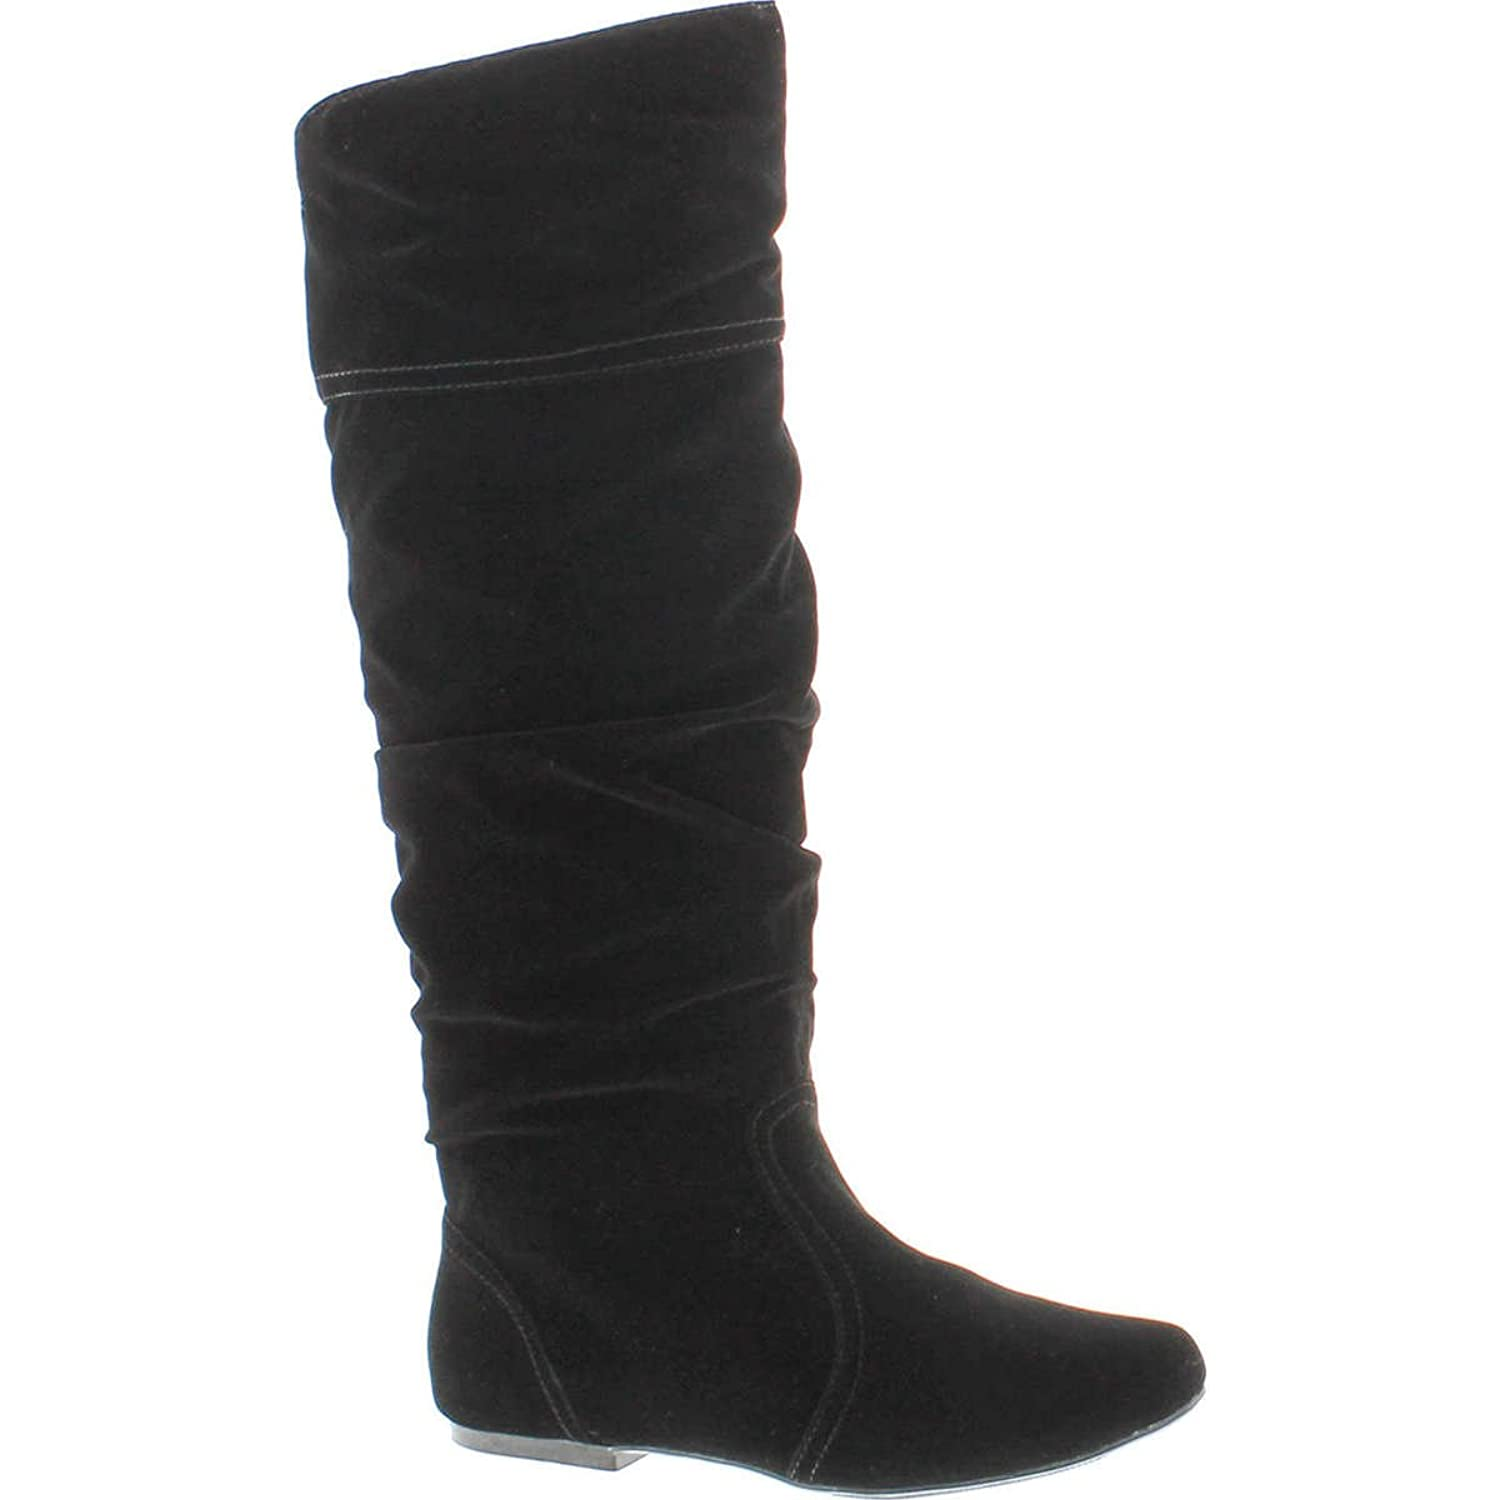 The Best Saigon Slouchy Mid-Calf Flat BootsLeopard Suede75 ORIGINAL West Blvd